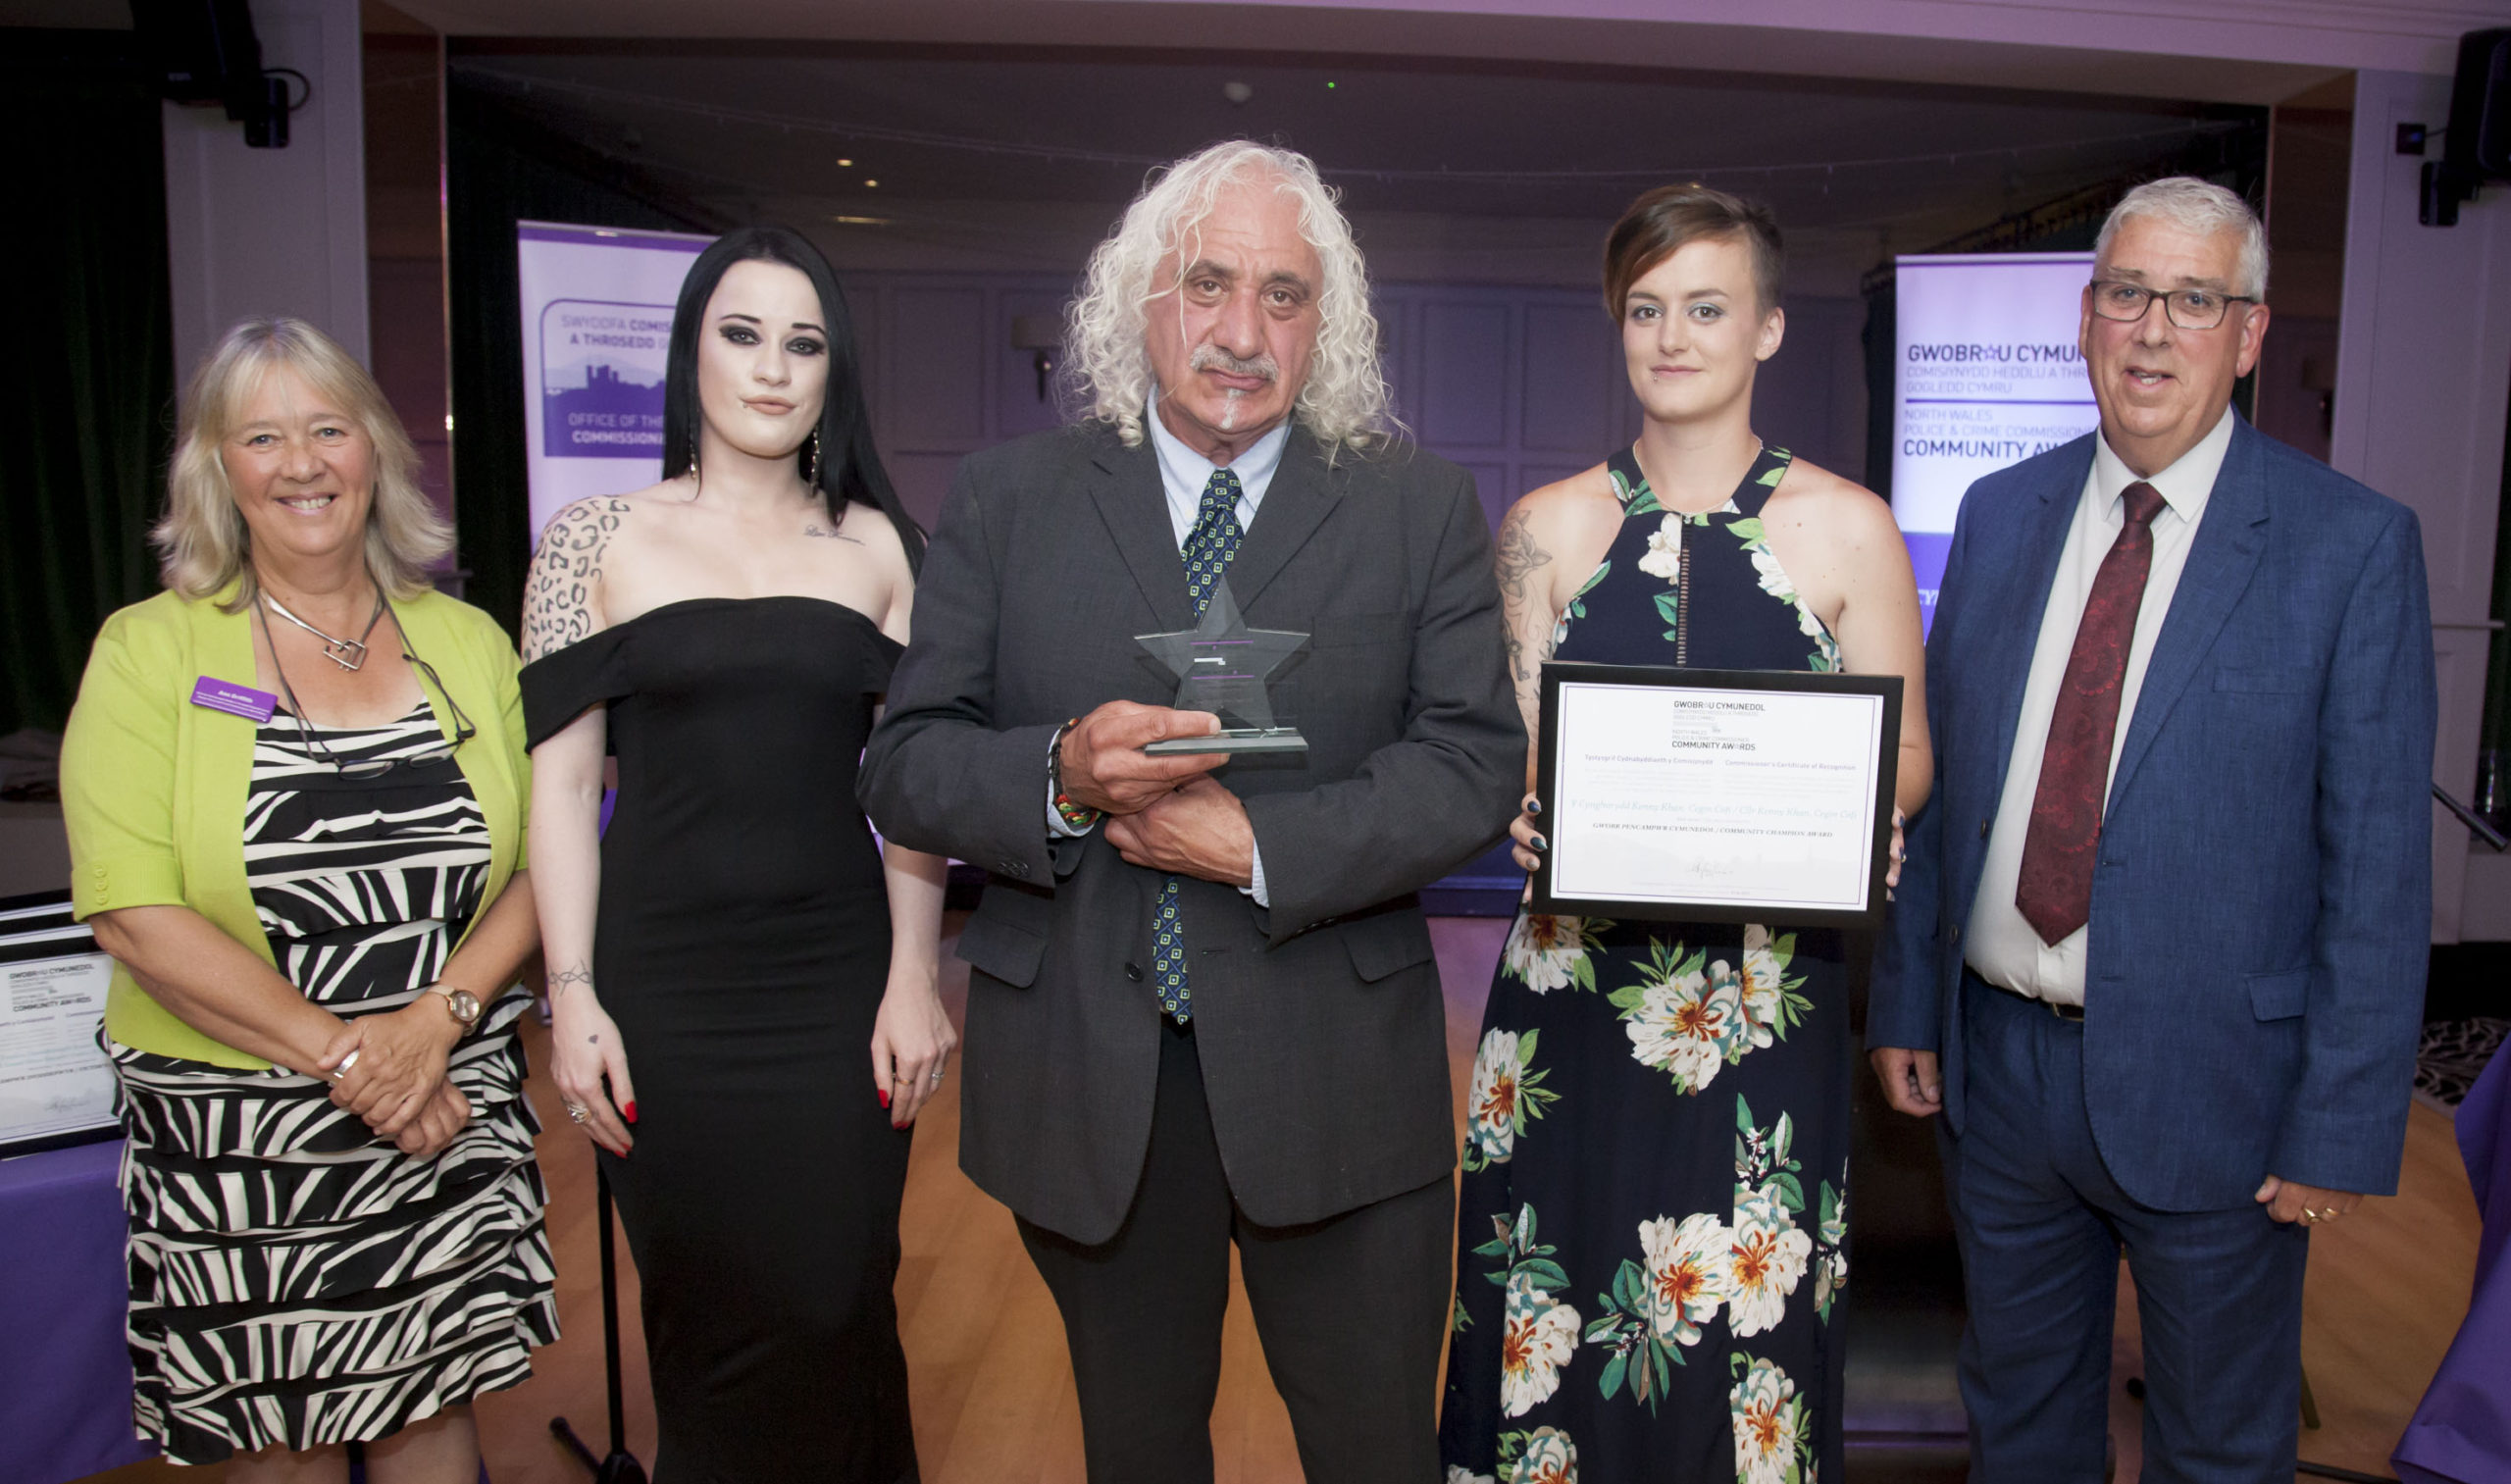 North Wales police boss honours community hero who turned his back on life of crime